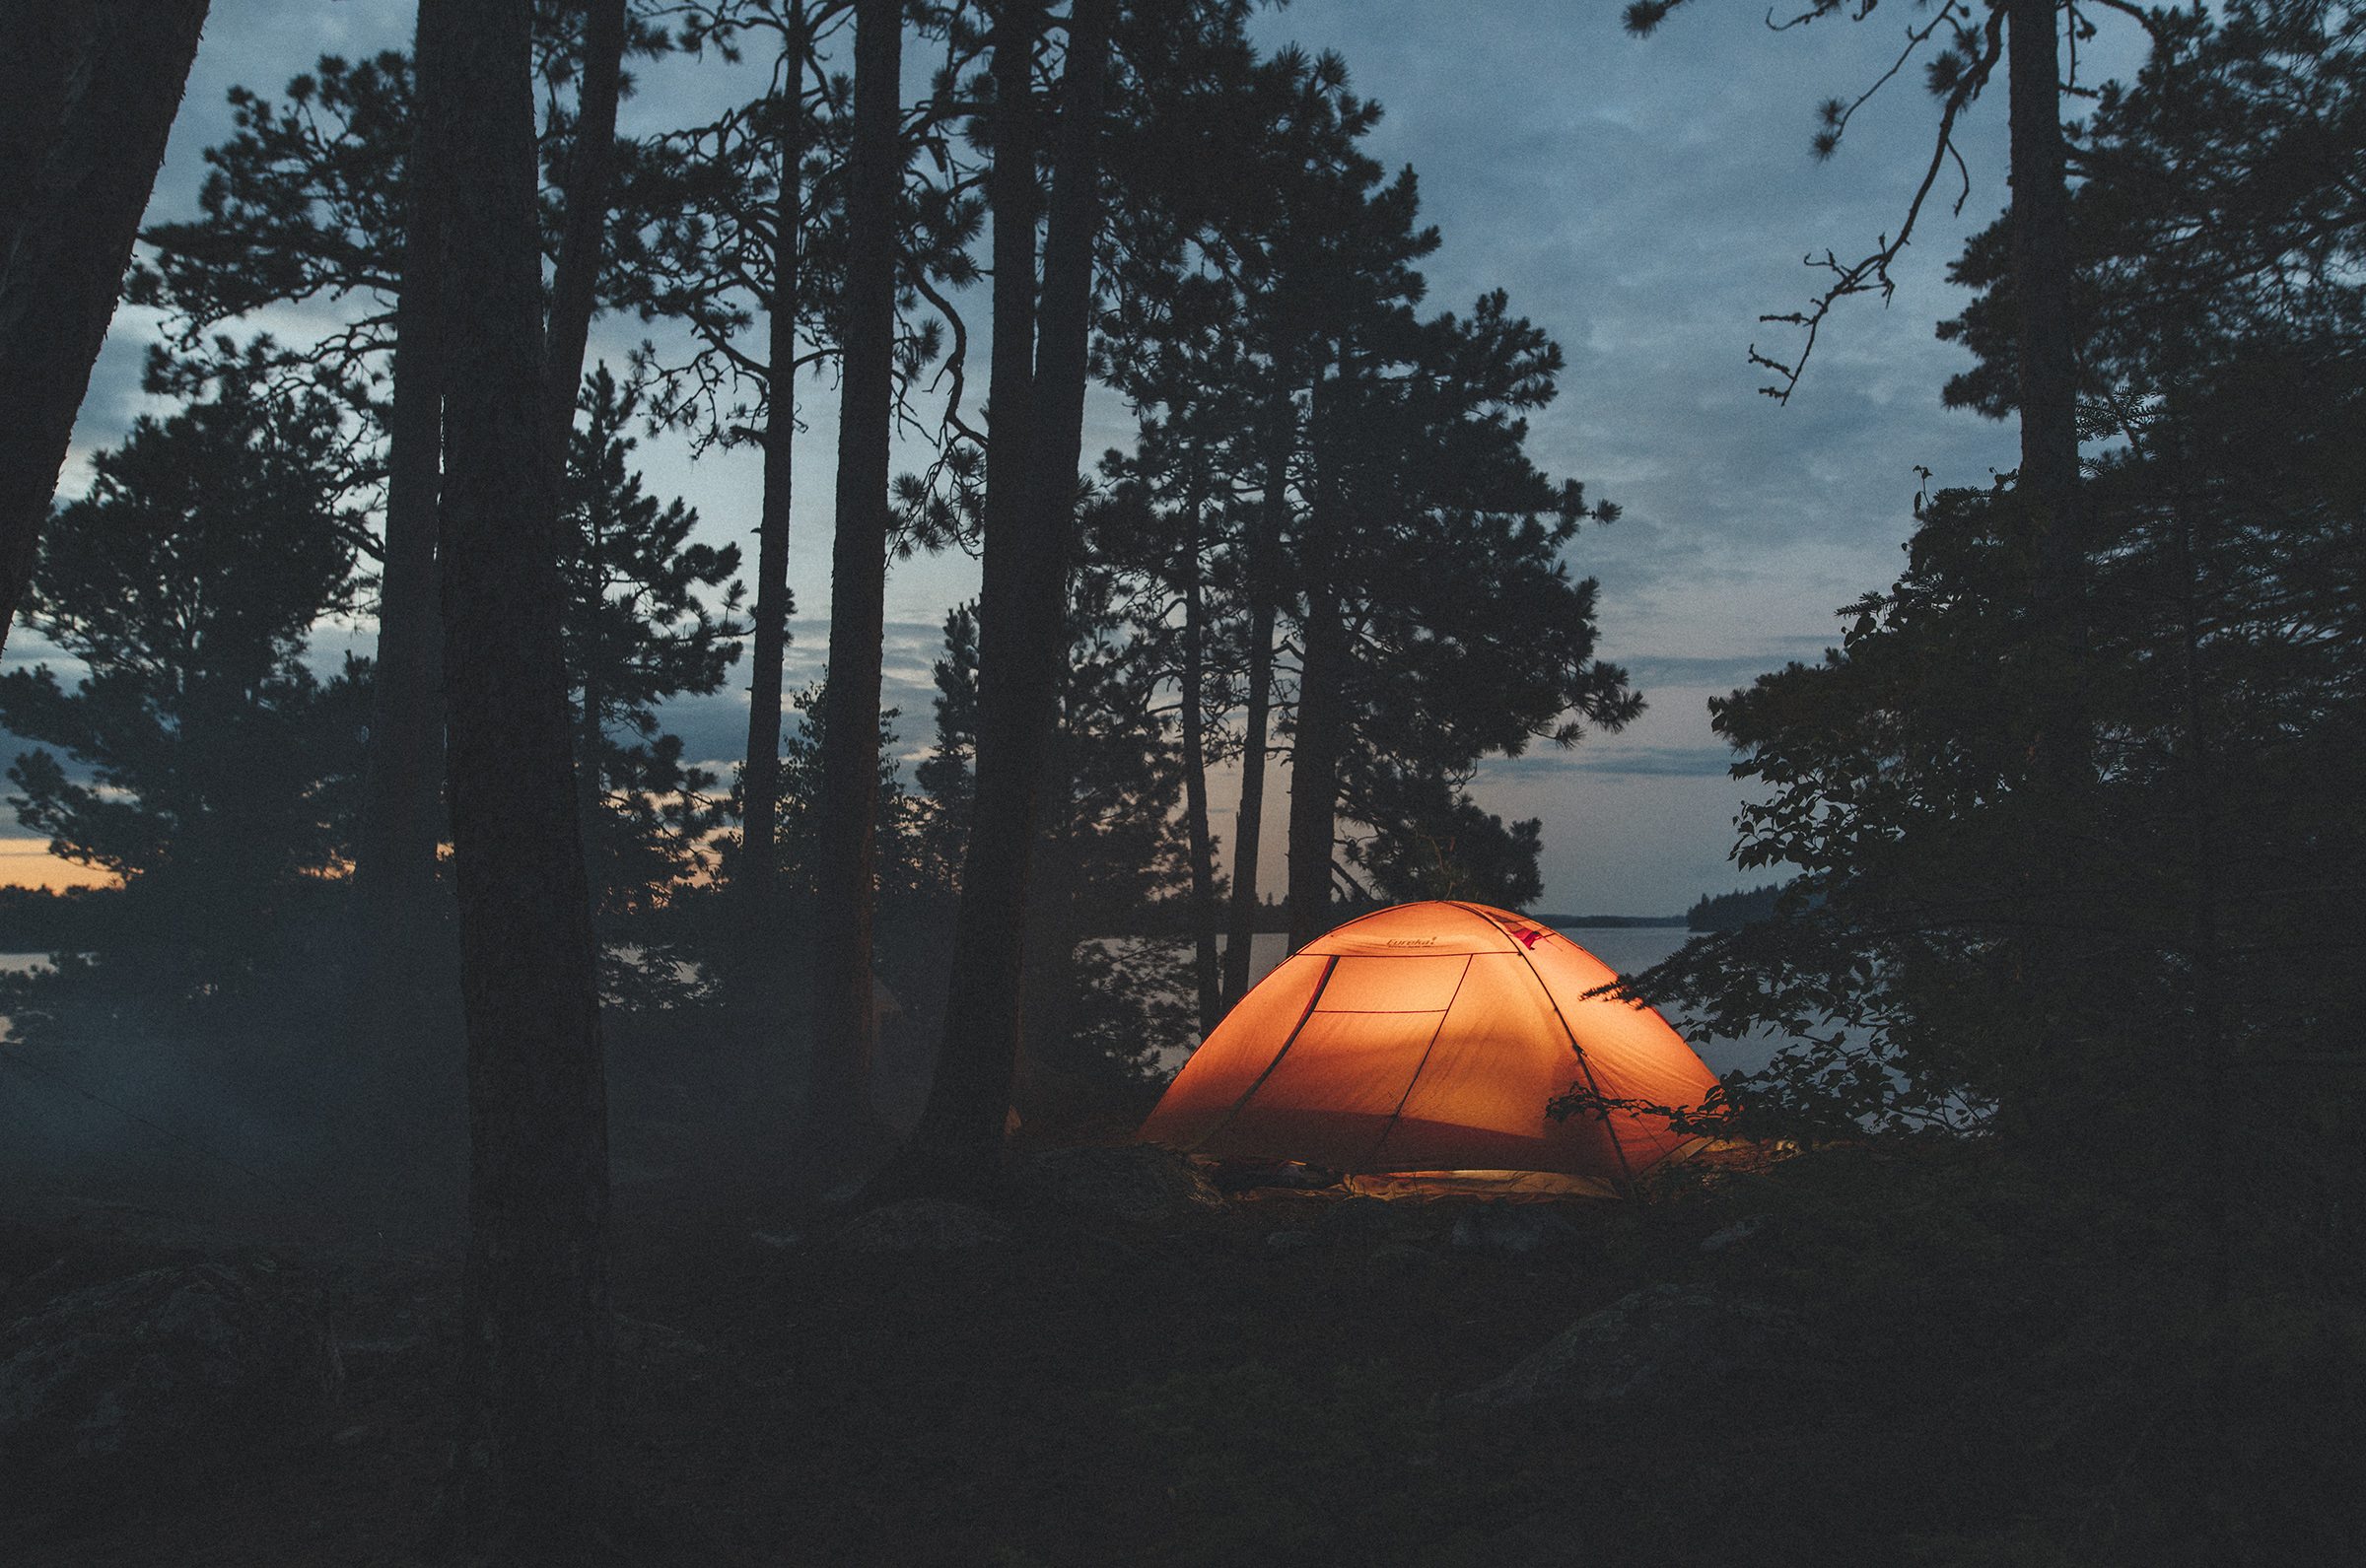 Camping Tent Forrest Woods Lake Orange